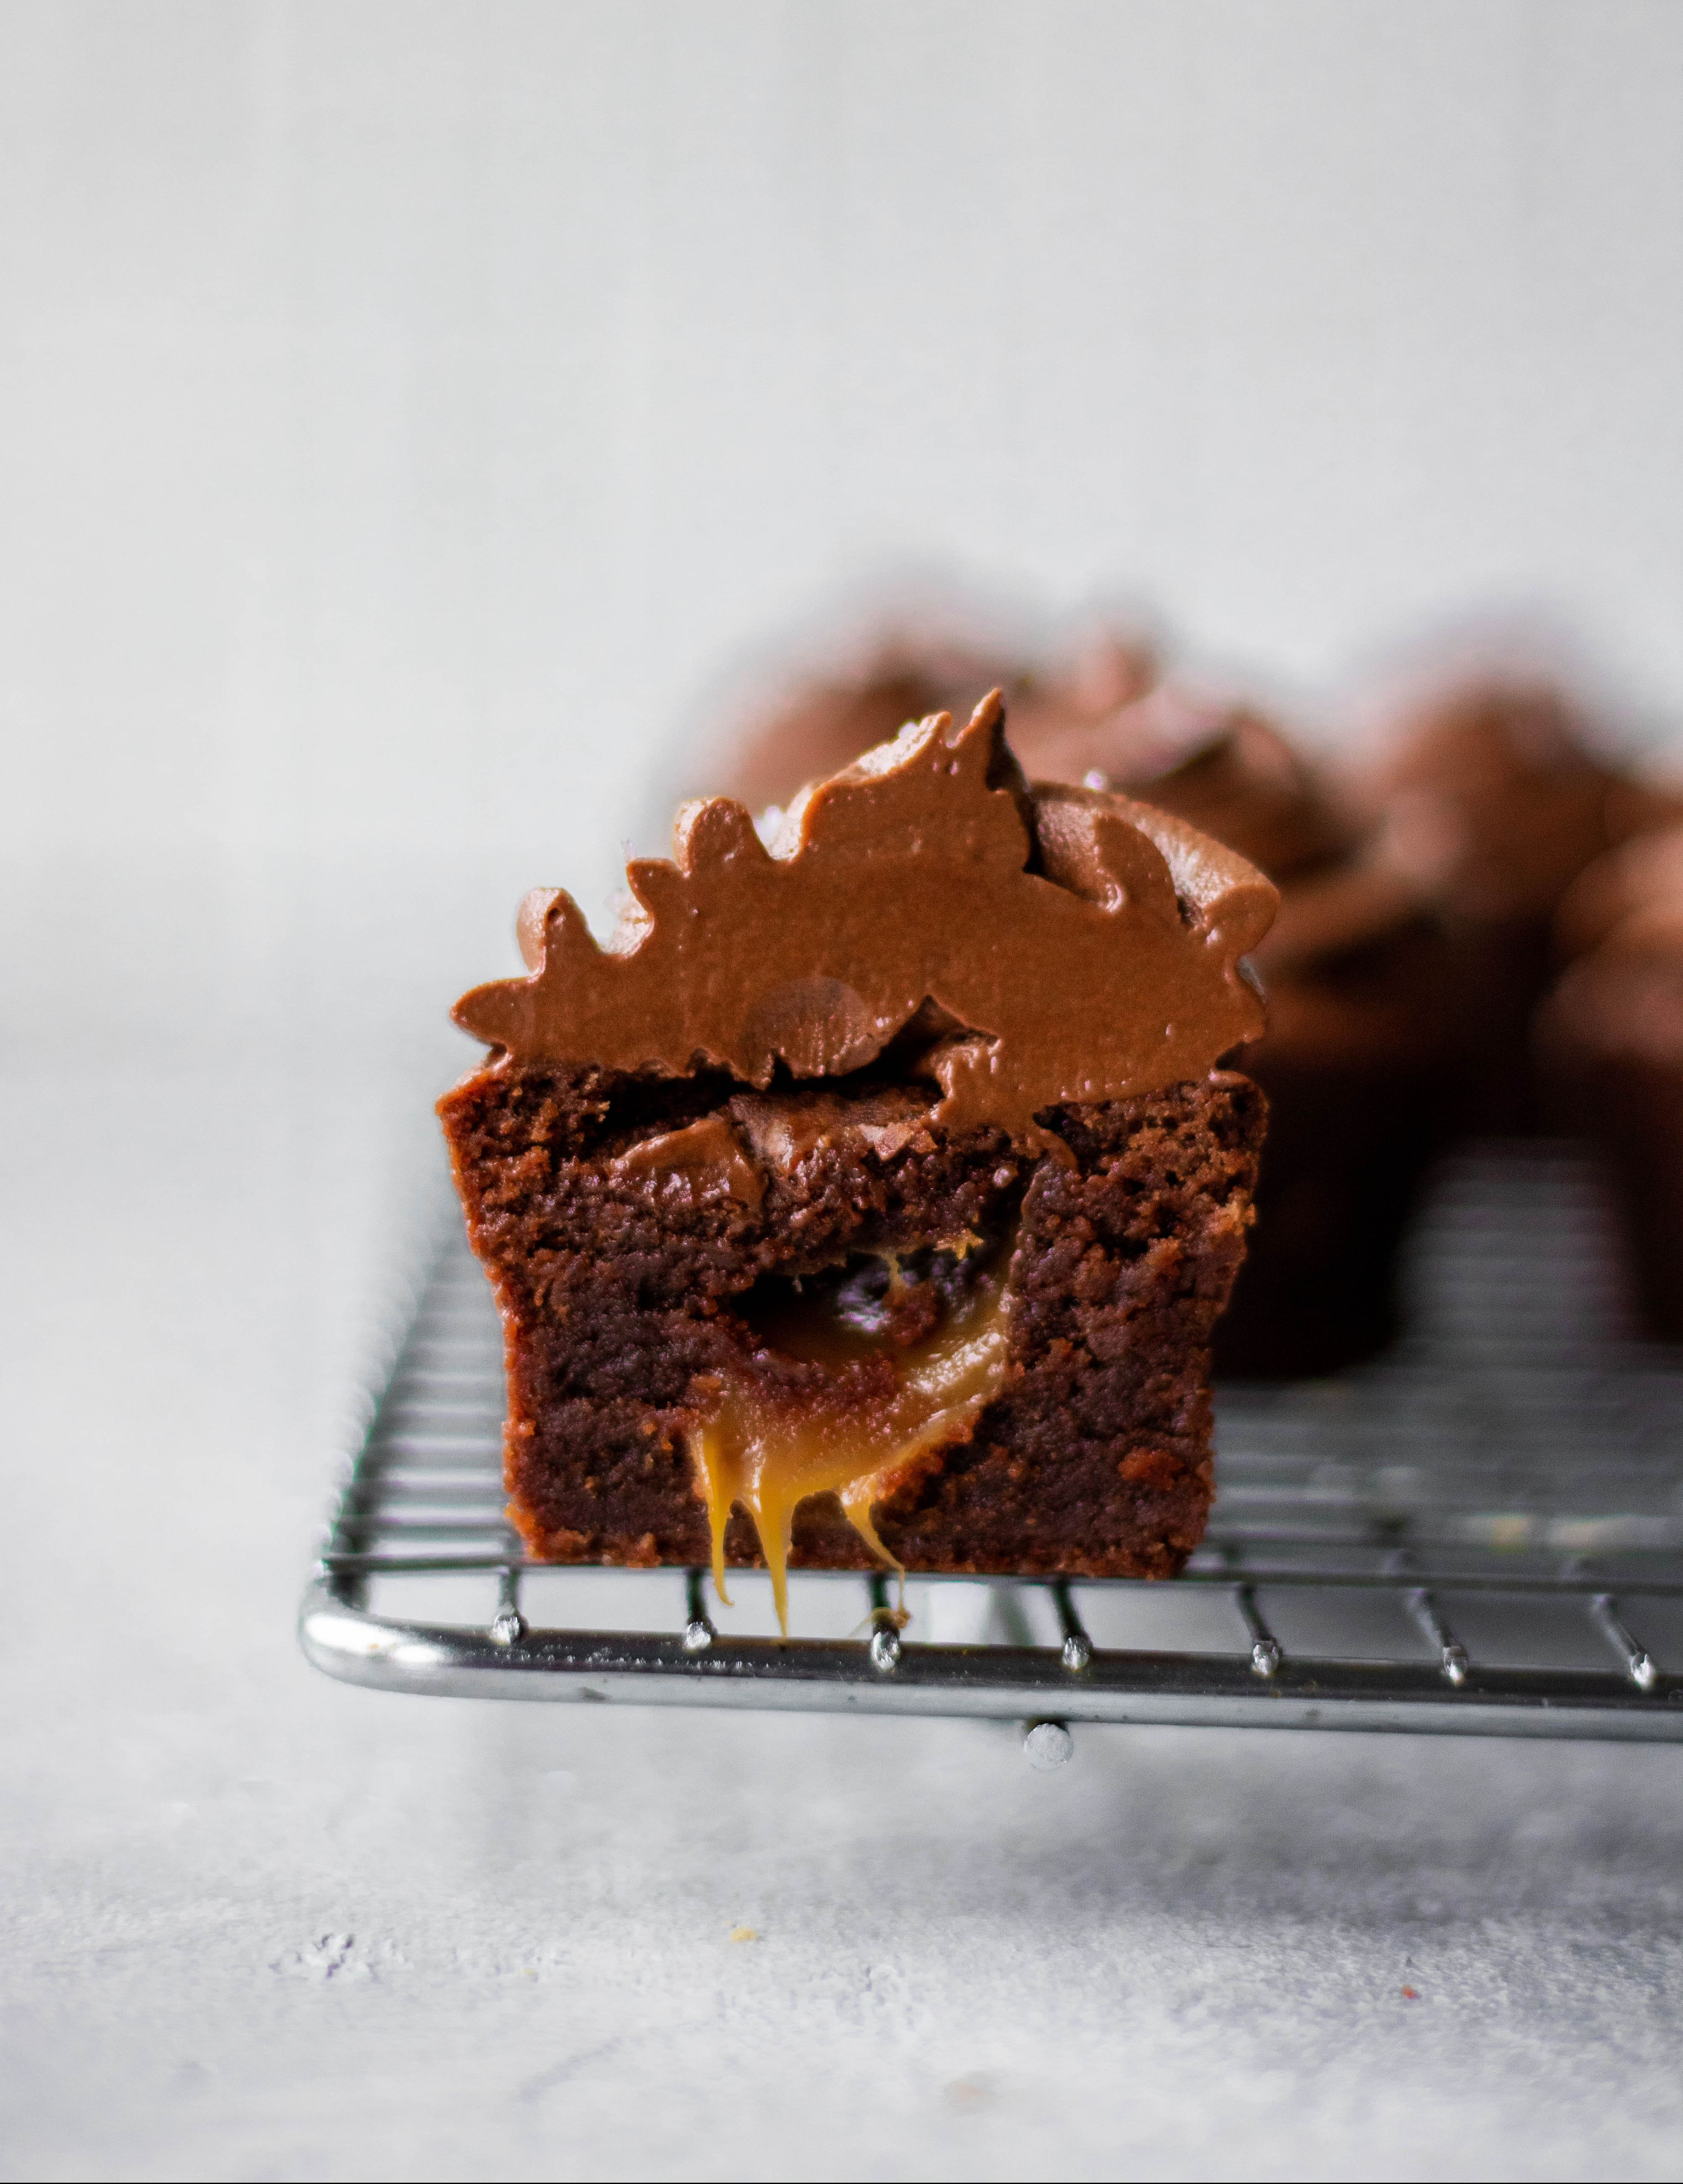 Salted Caramel Filled Brownie Bites with Whipped Chocolate Ganache